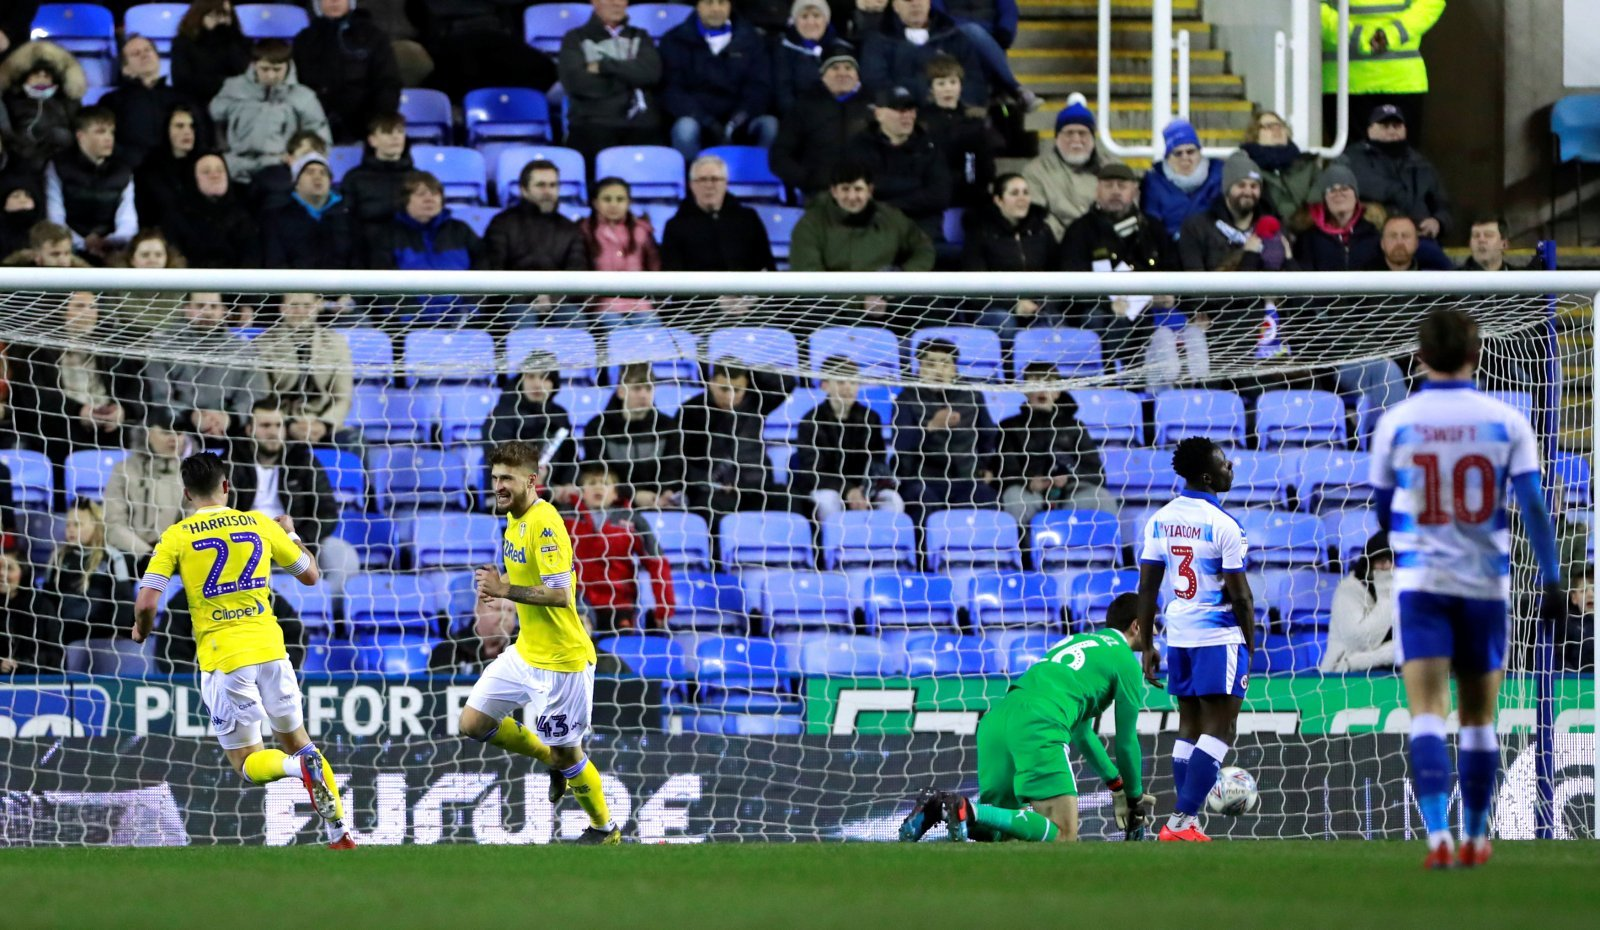 Leeds United: Back to the right place at the right time